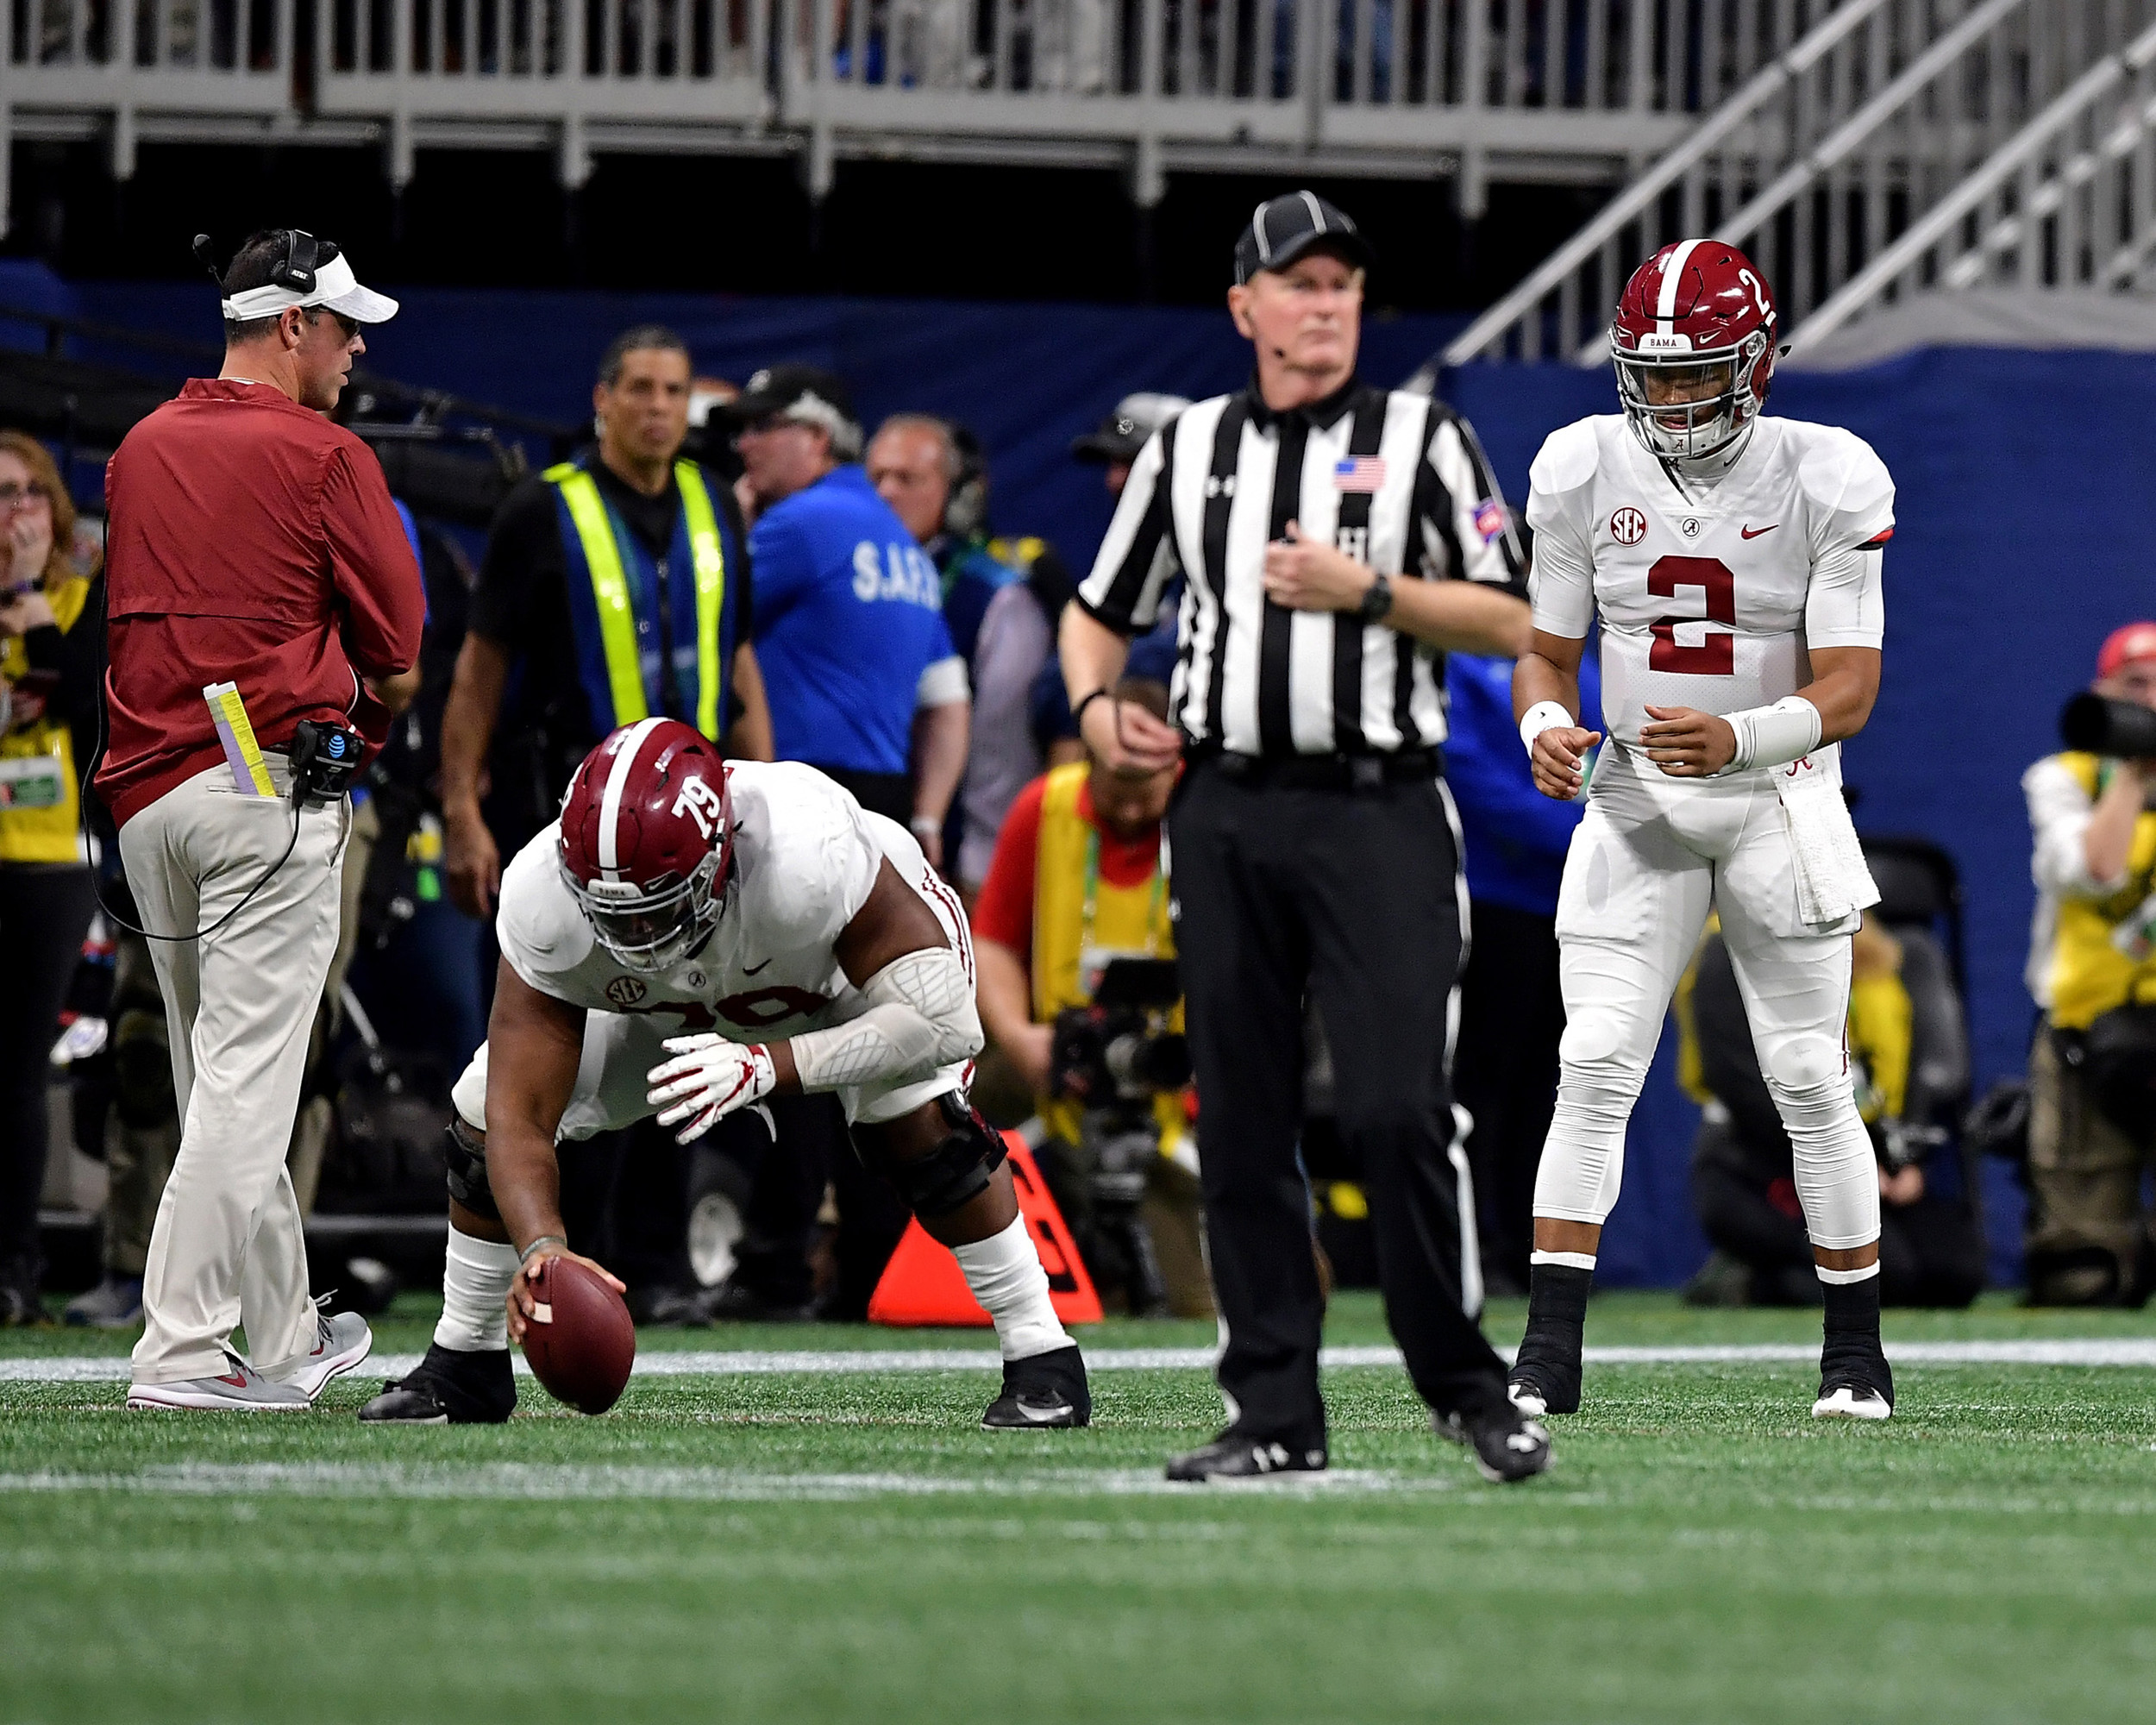 Alabama Crimson Tide quarterback Jalen Hurts (2) warms up prior to entering the game late in the fourth quarter of the 2018 SEC Championship football game at Mercedes-Benz Stadium in Atlanta, Ga., on Dec. 1, 2018. Alabama wins 35-28. (Photo by Lee Walls)